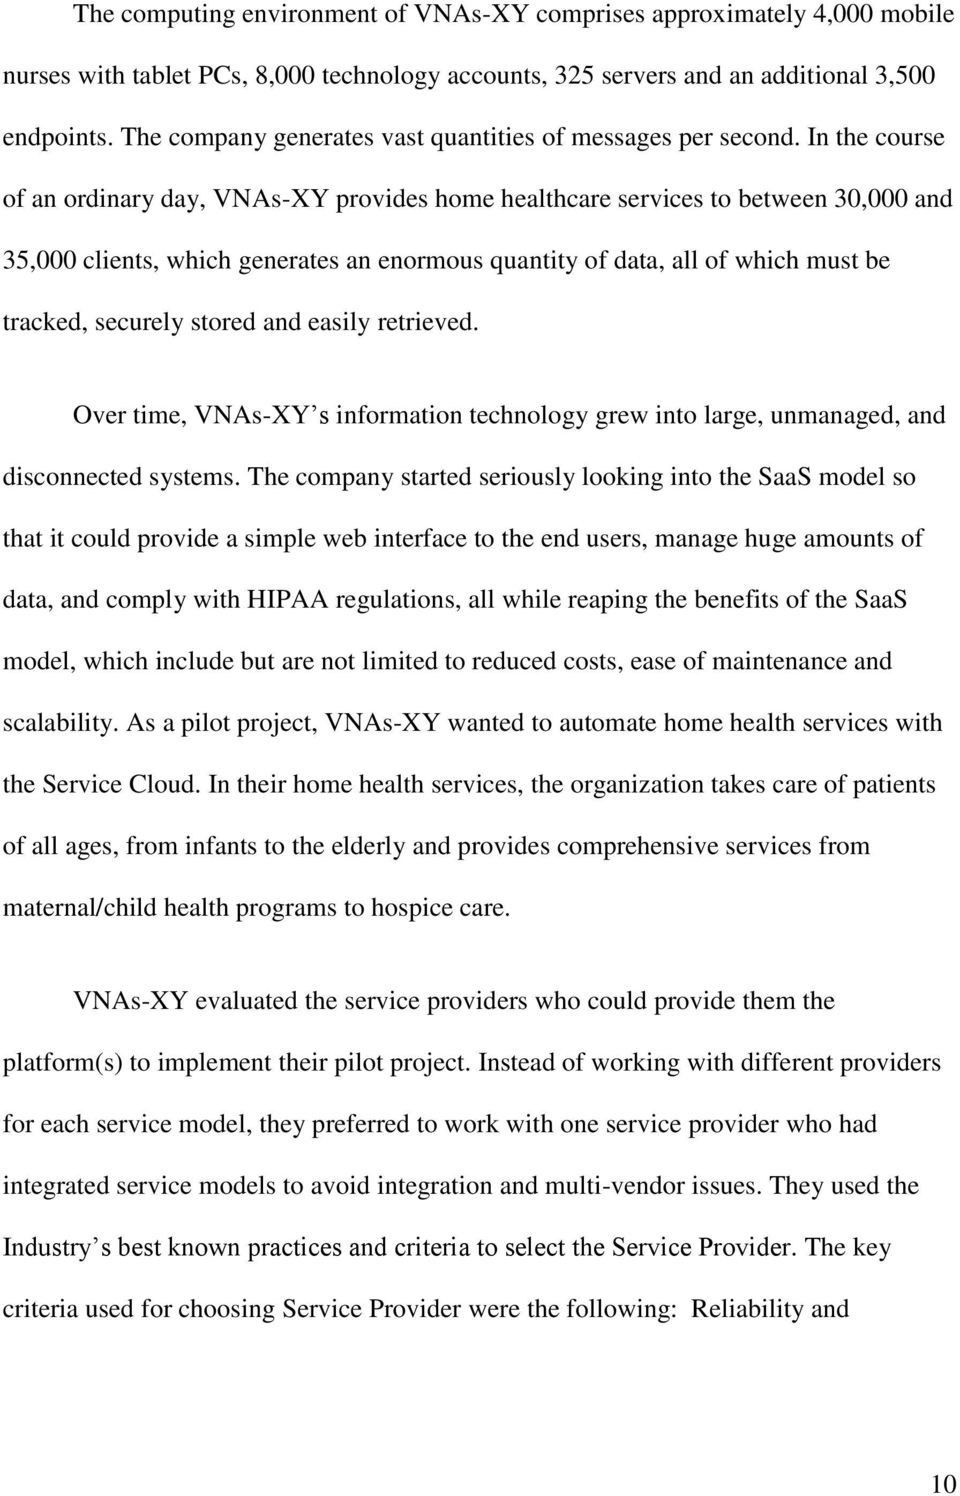 In the course of an ordinary day, VNAs-XY provides home healthcare services to between 30,000 and 35,000 clients, which generates an enormous quantity of data, all of which must be tracked, securely